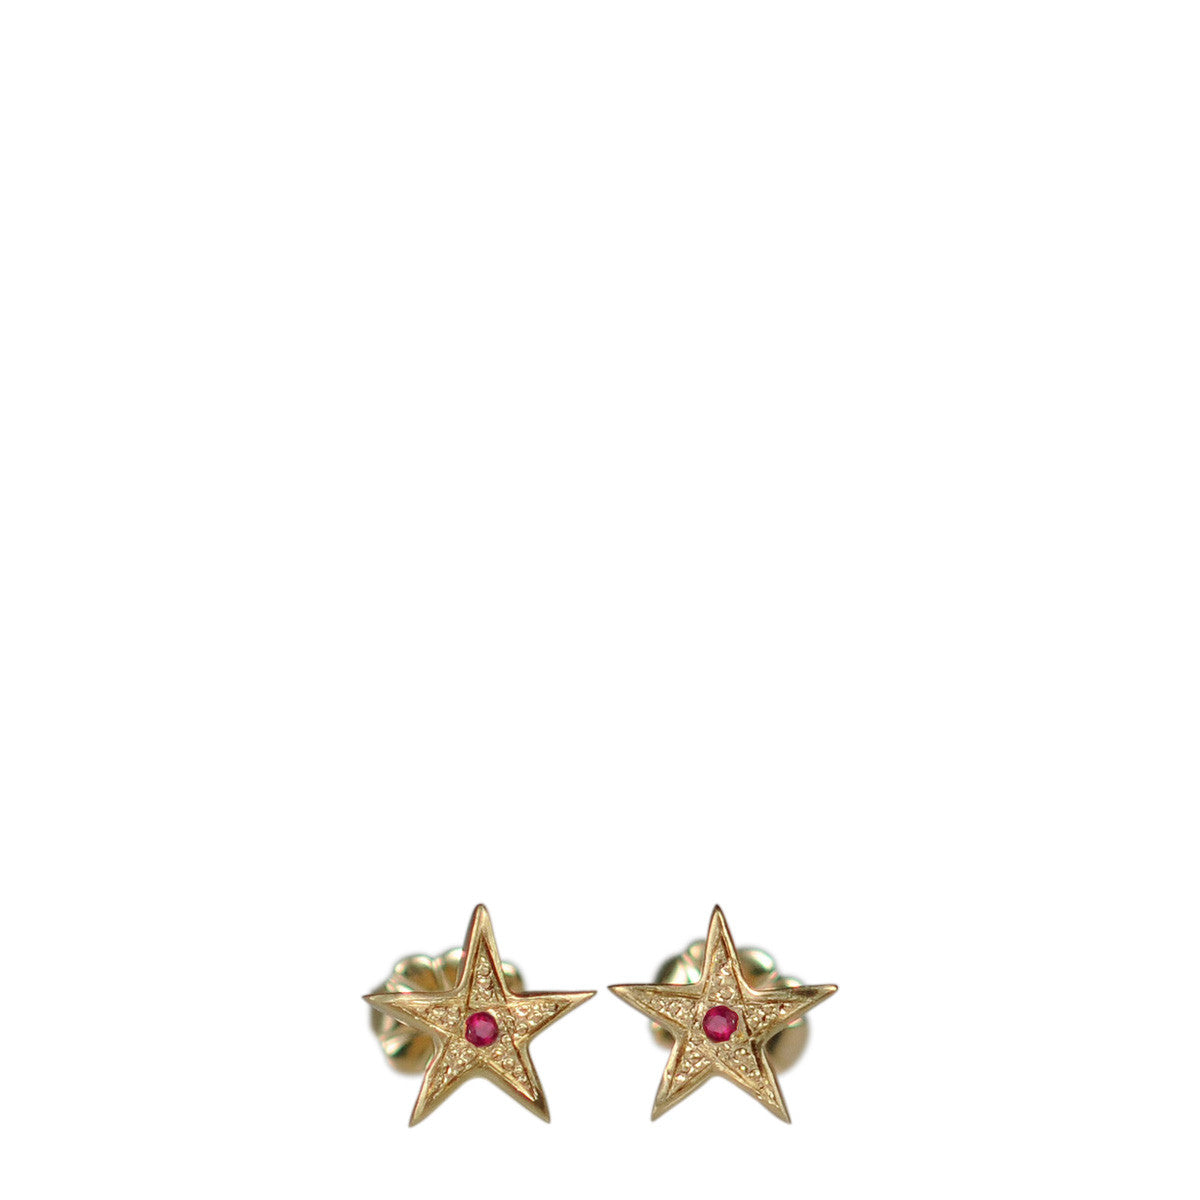 10K Gold Tiny Bombay Star Stud Earrings with Rubies